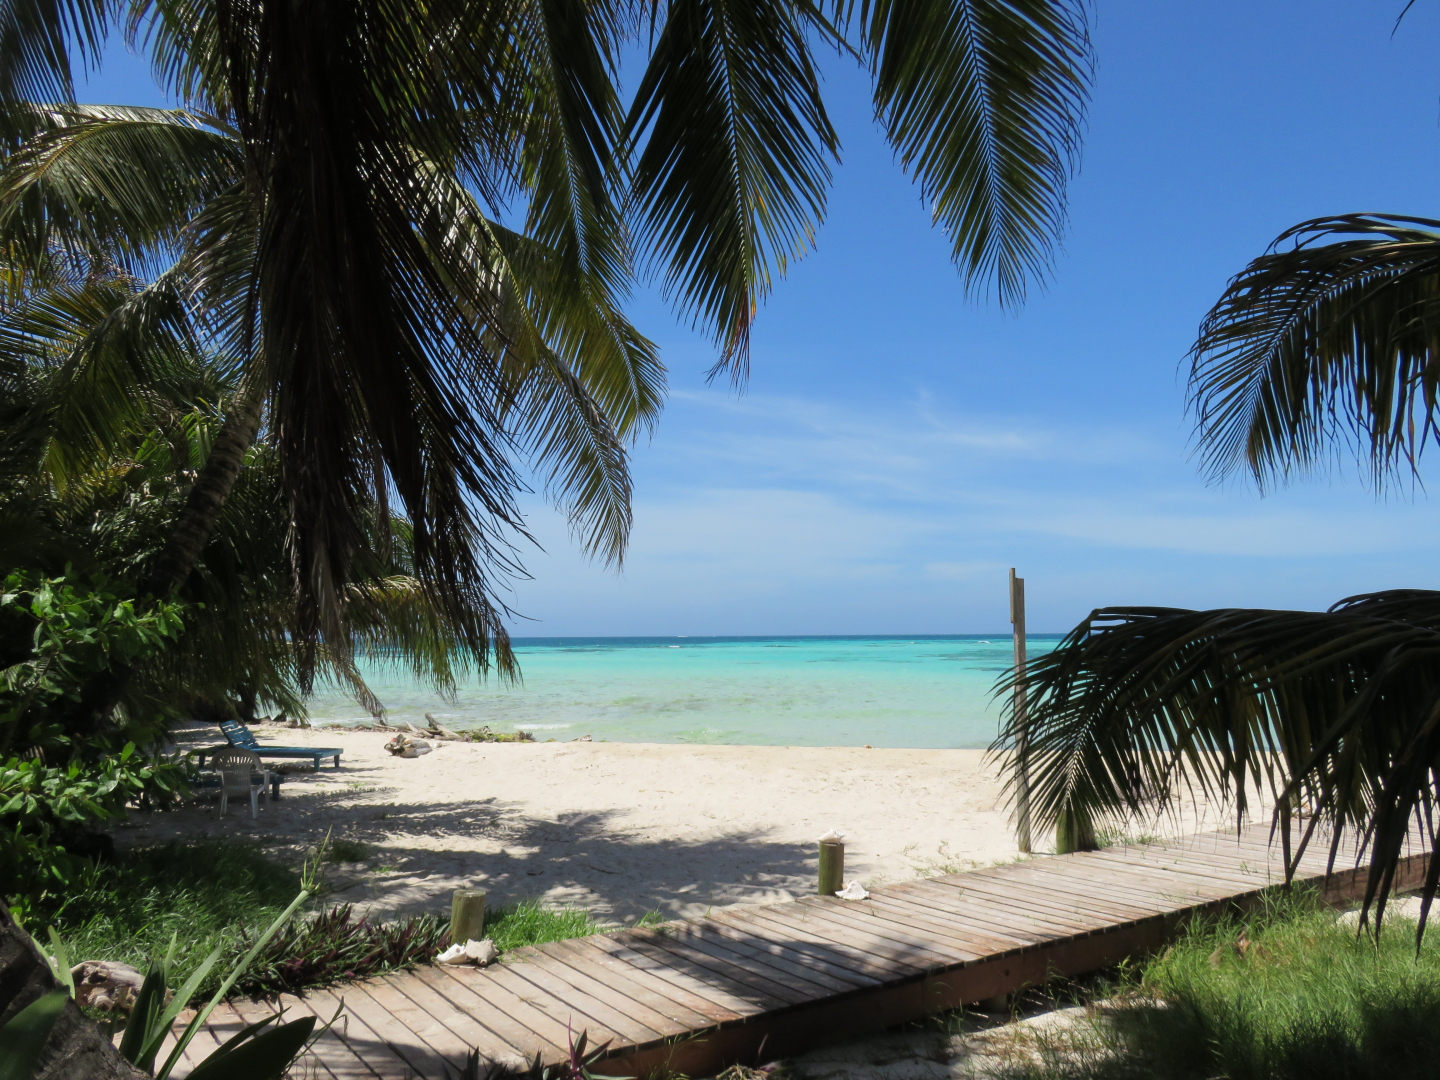 buying a home in belize a Vista real estate - belize's number 1 realty and property specialistâ offering a  wide selection of properties throughout belize we represent belize real estate.